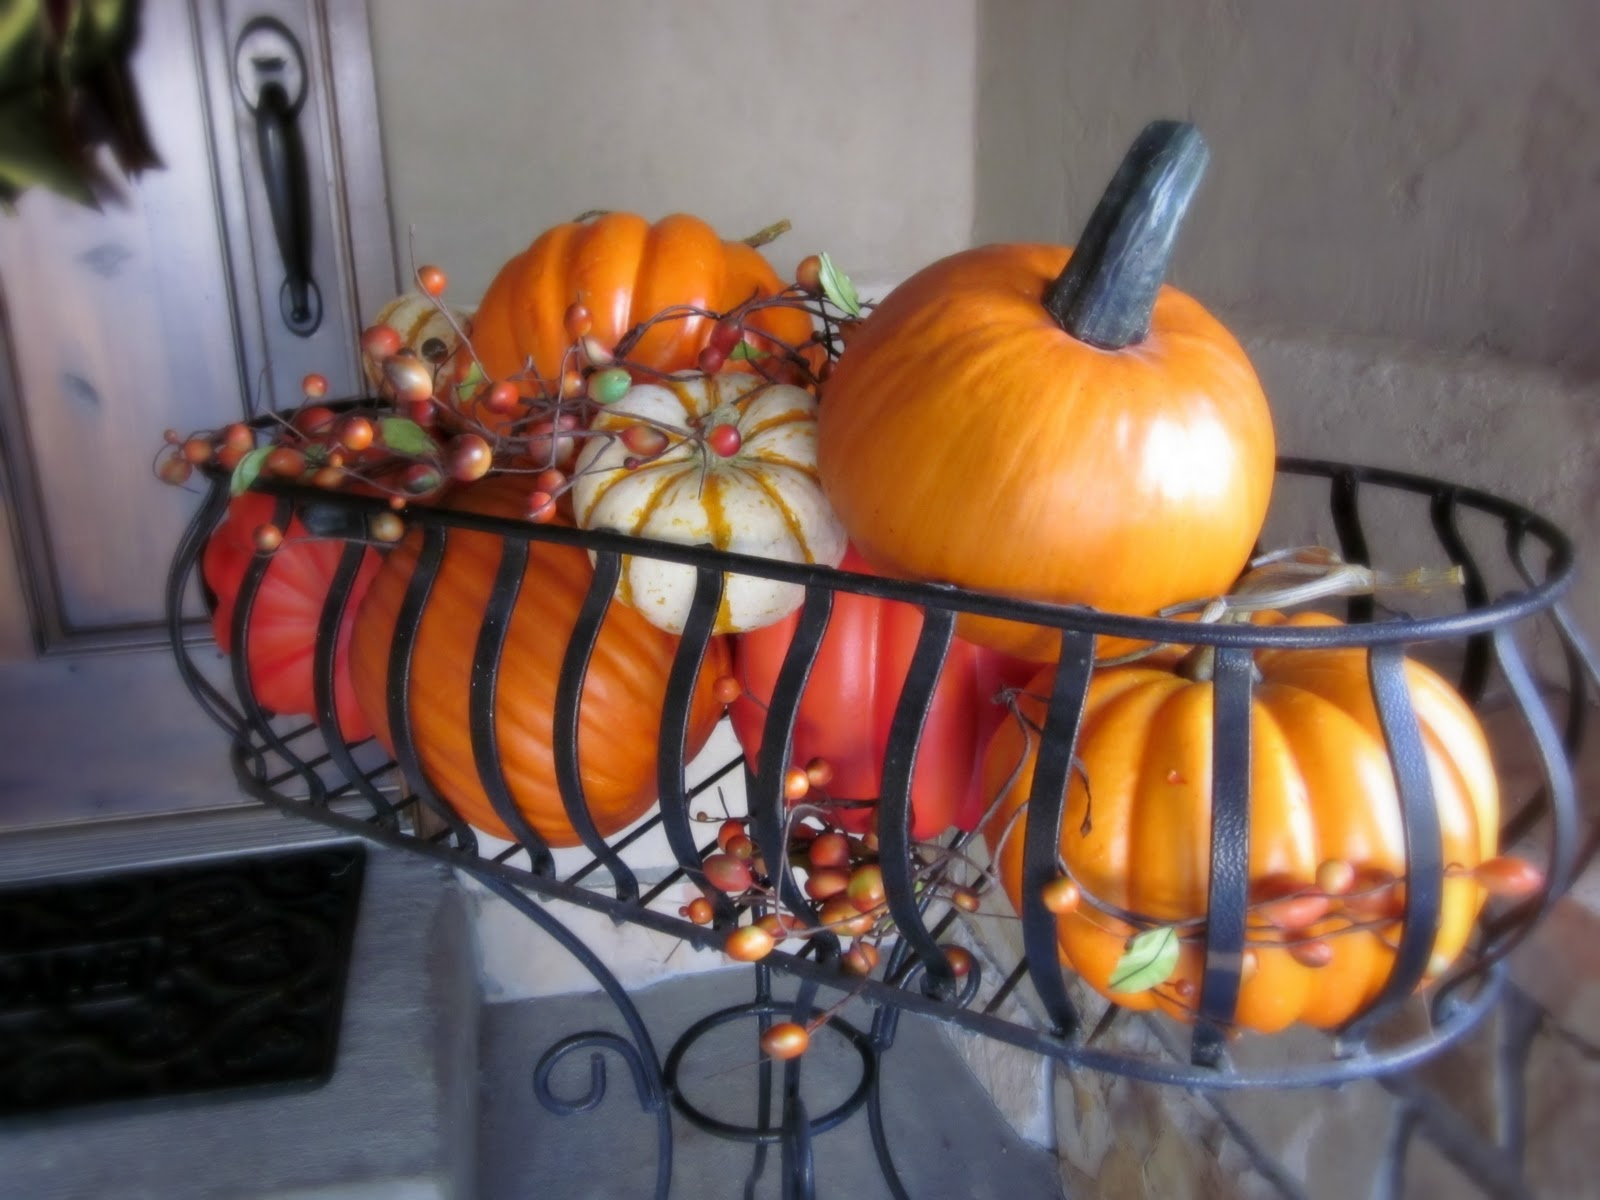 Walmart thanksgiving decorations images